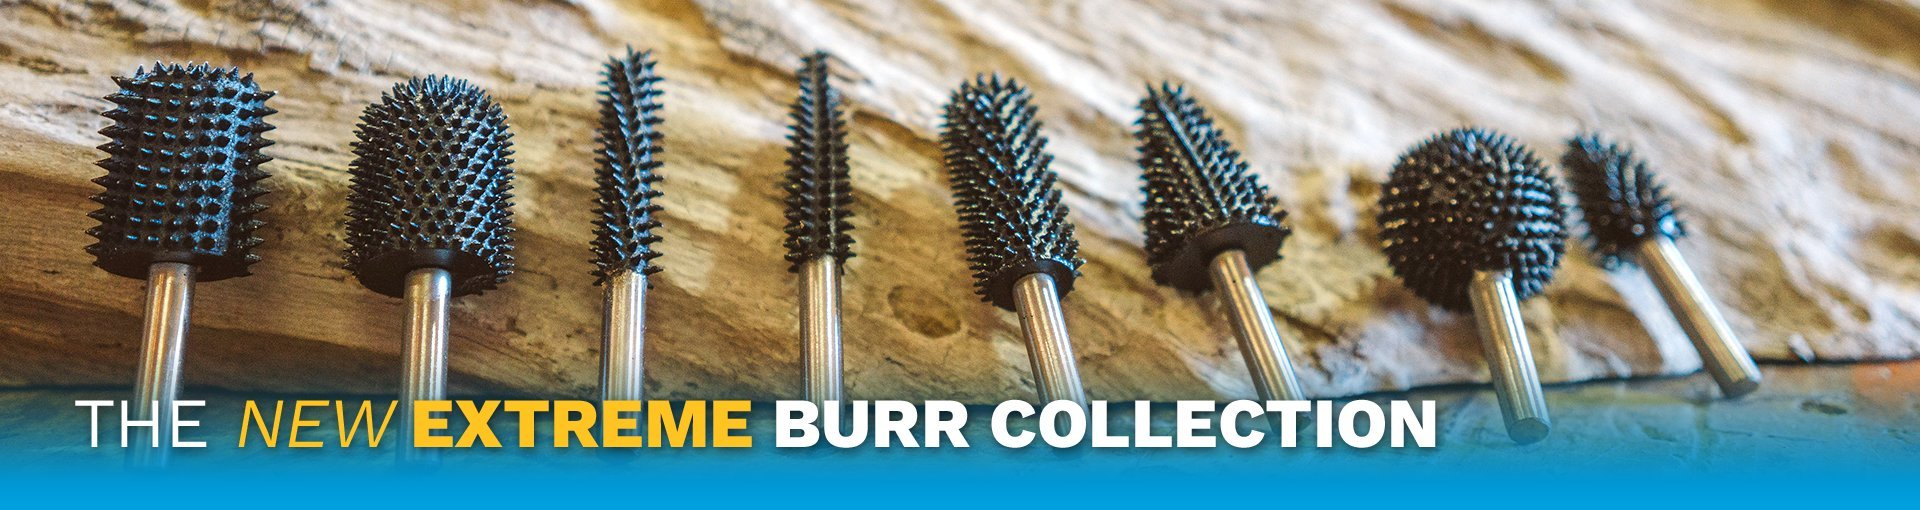 The New Extreme Burr Collection